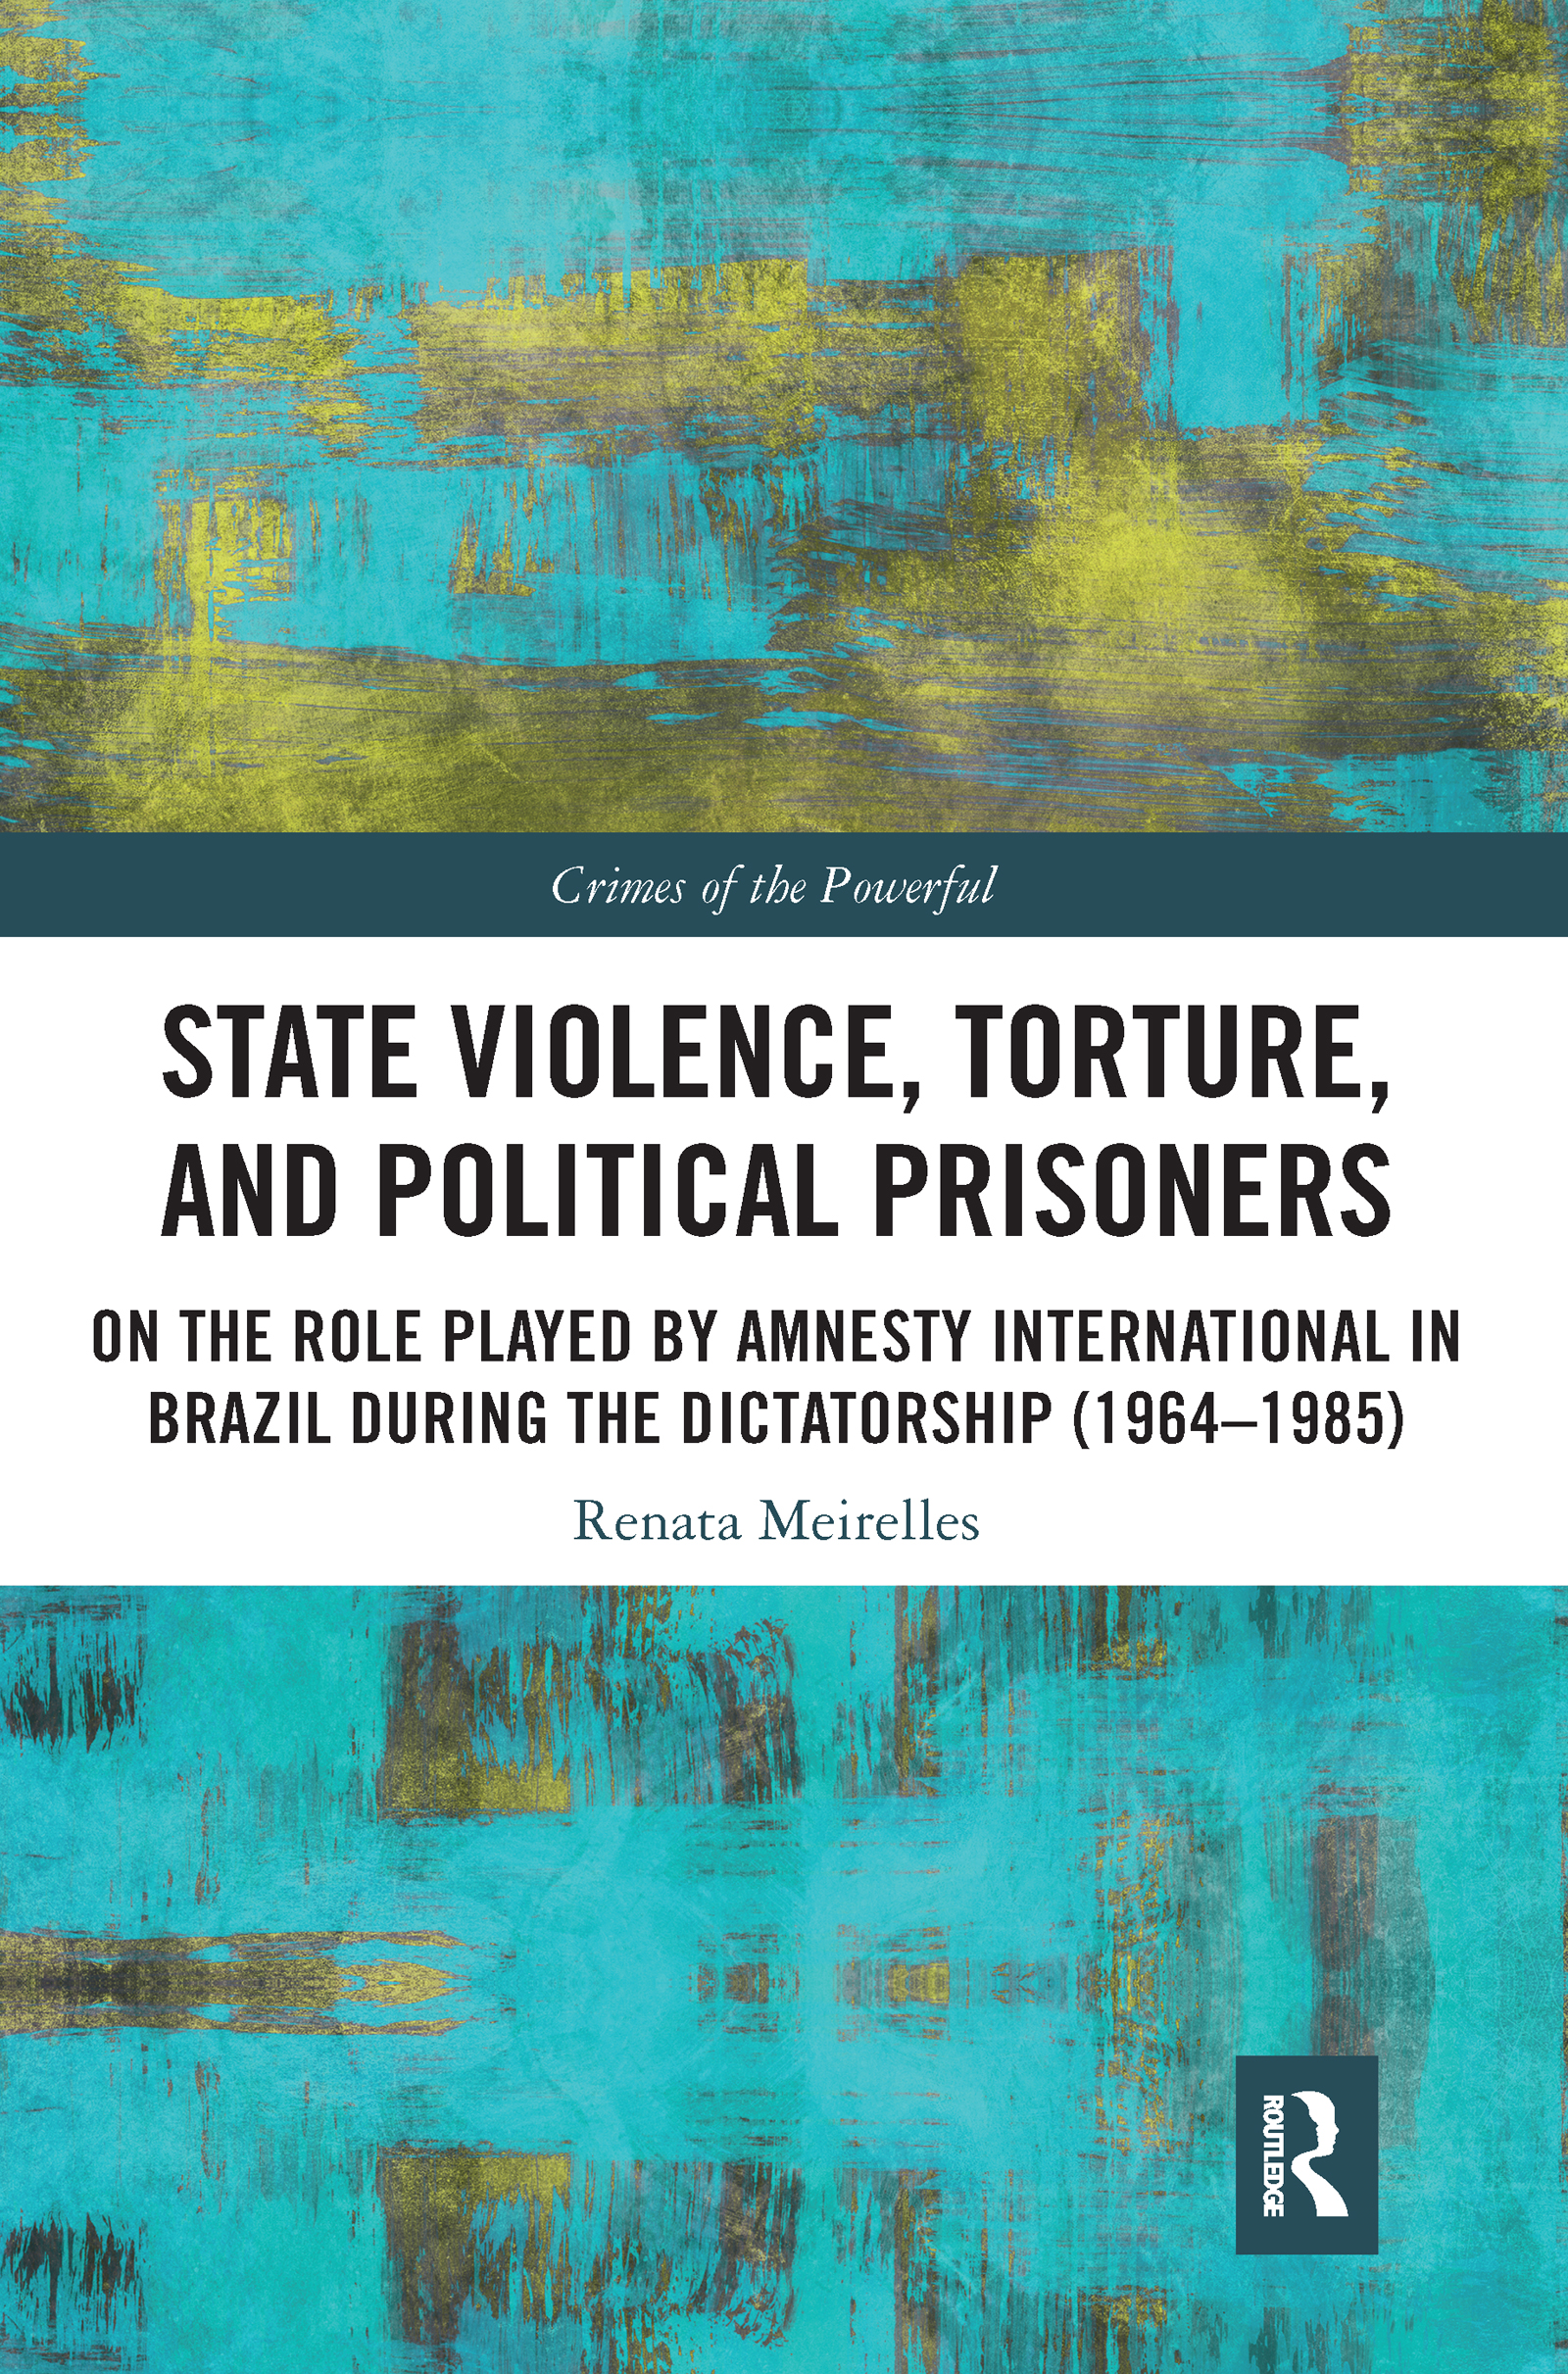 State Violence, Torture, and Political Prisoners